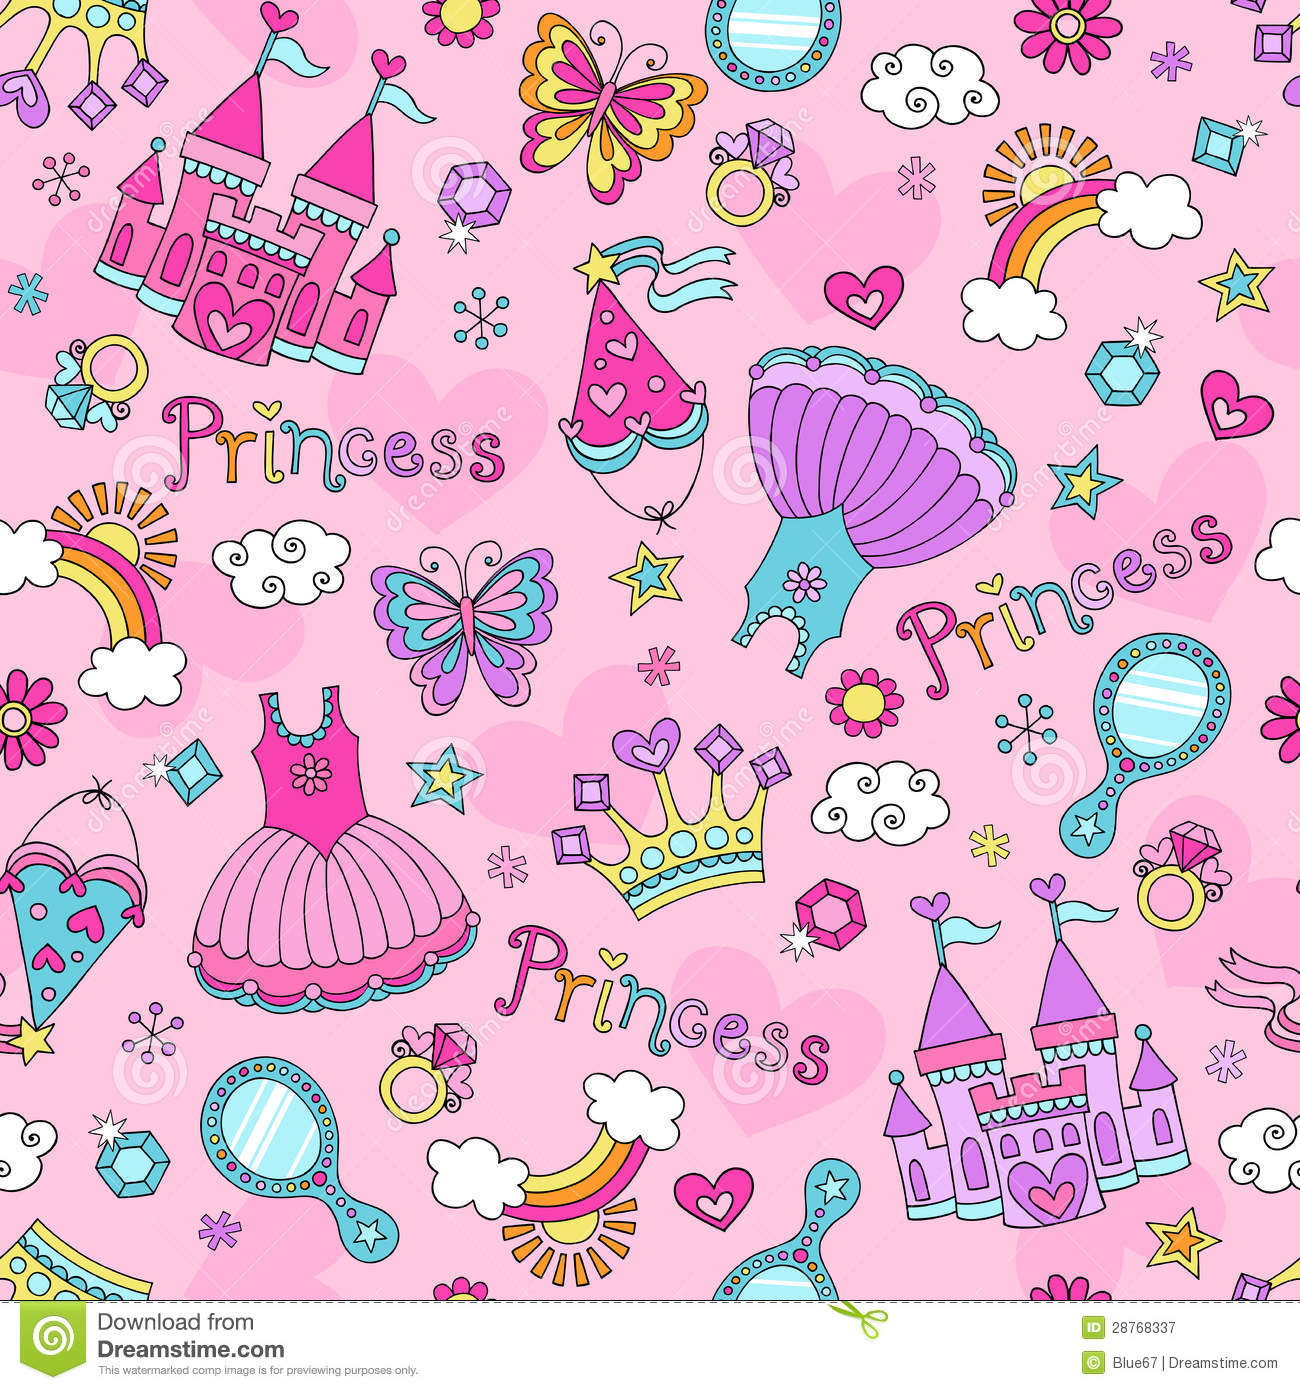 Princess Fairy Tale Doodles Seamless Pattern Vecto Stock